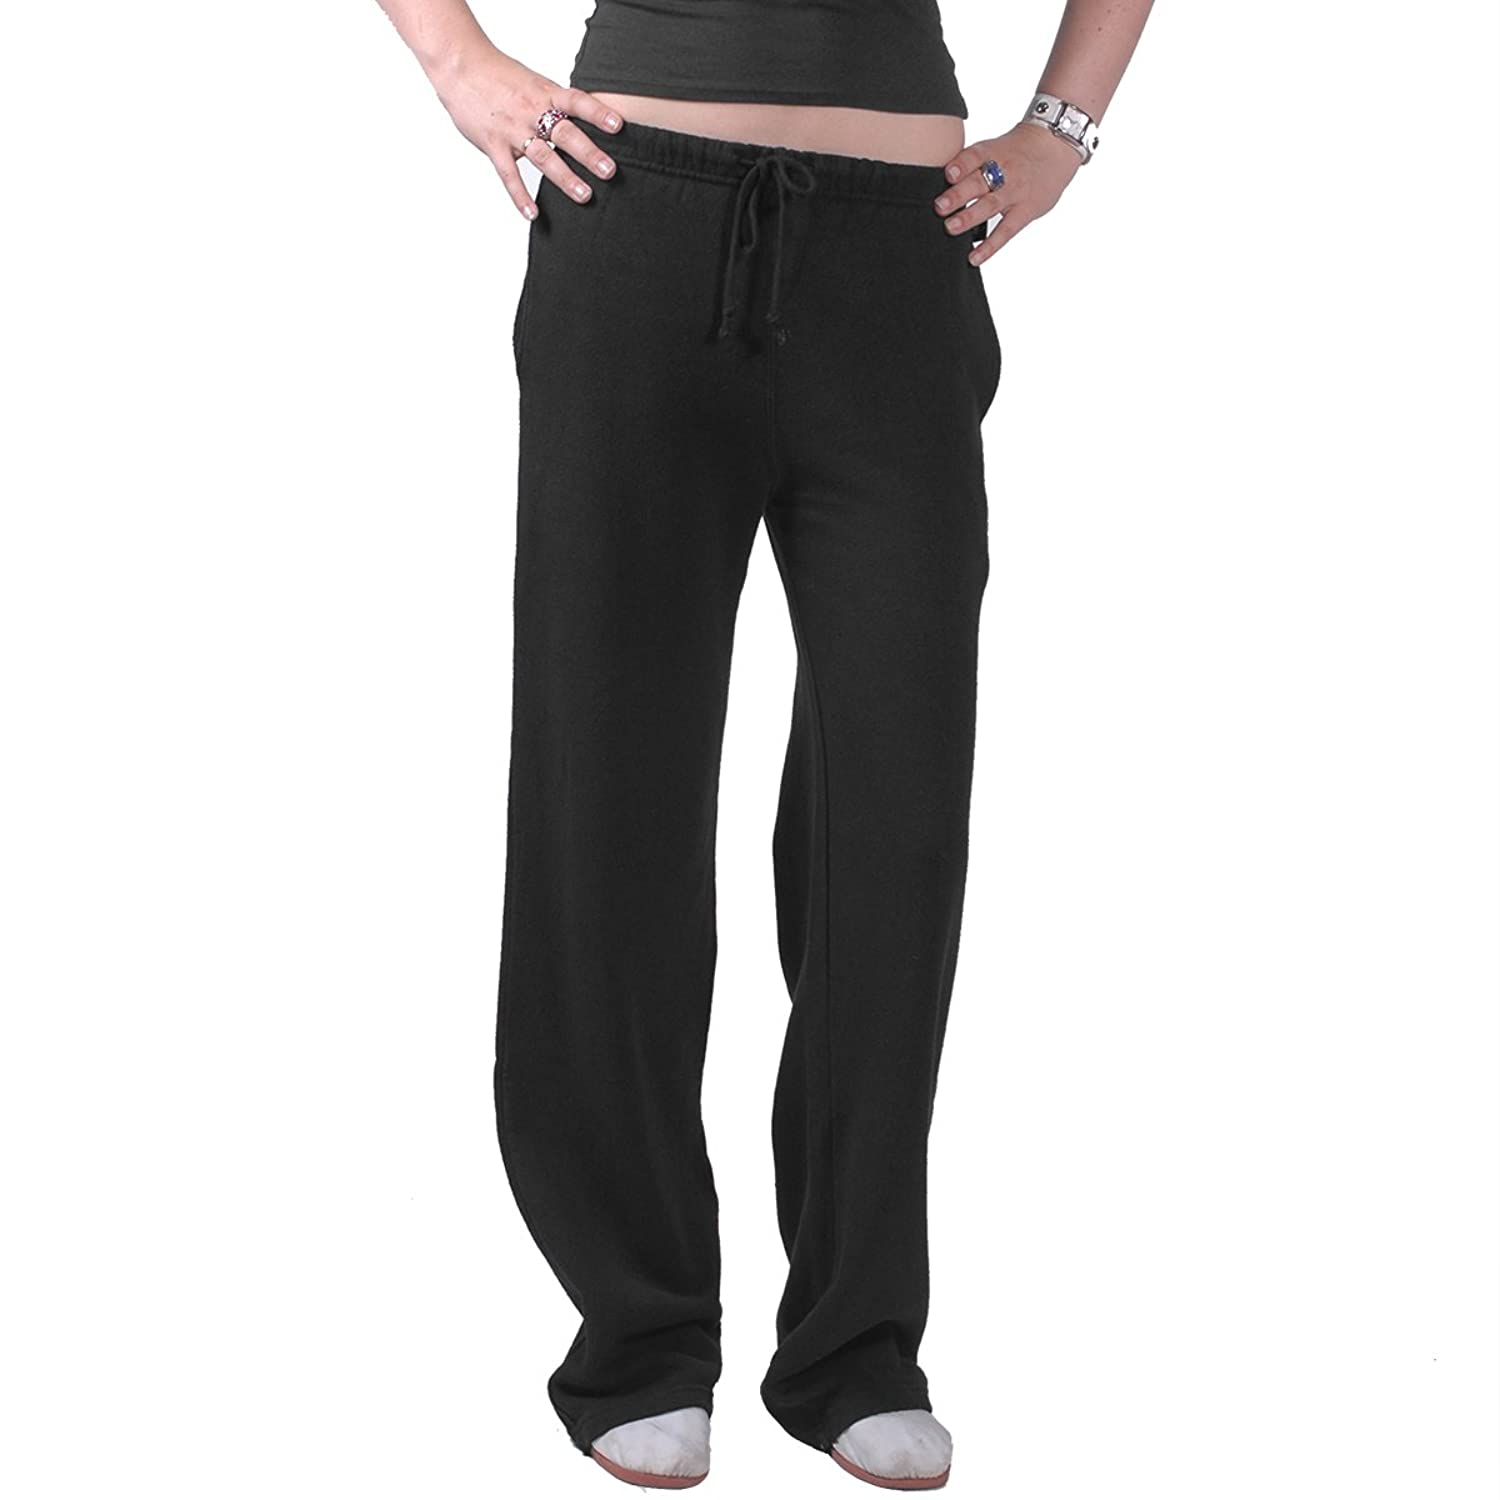 Effort's WOMEN'S HEMP SWEAT PANTS